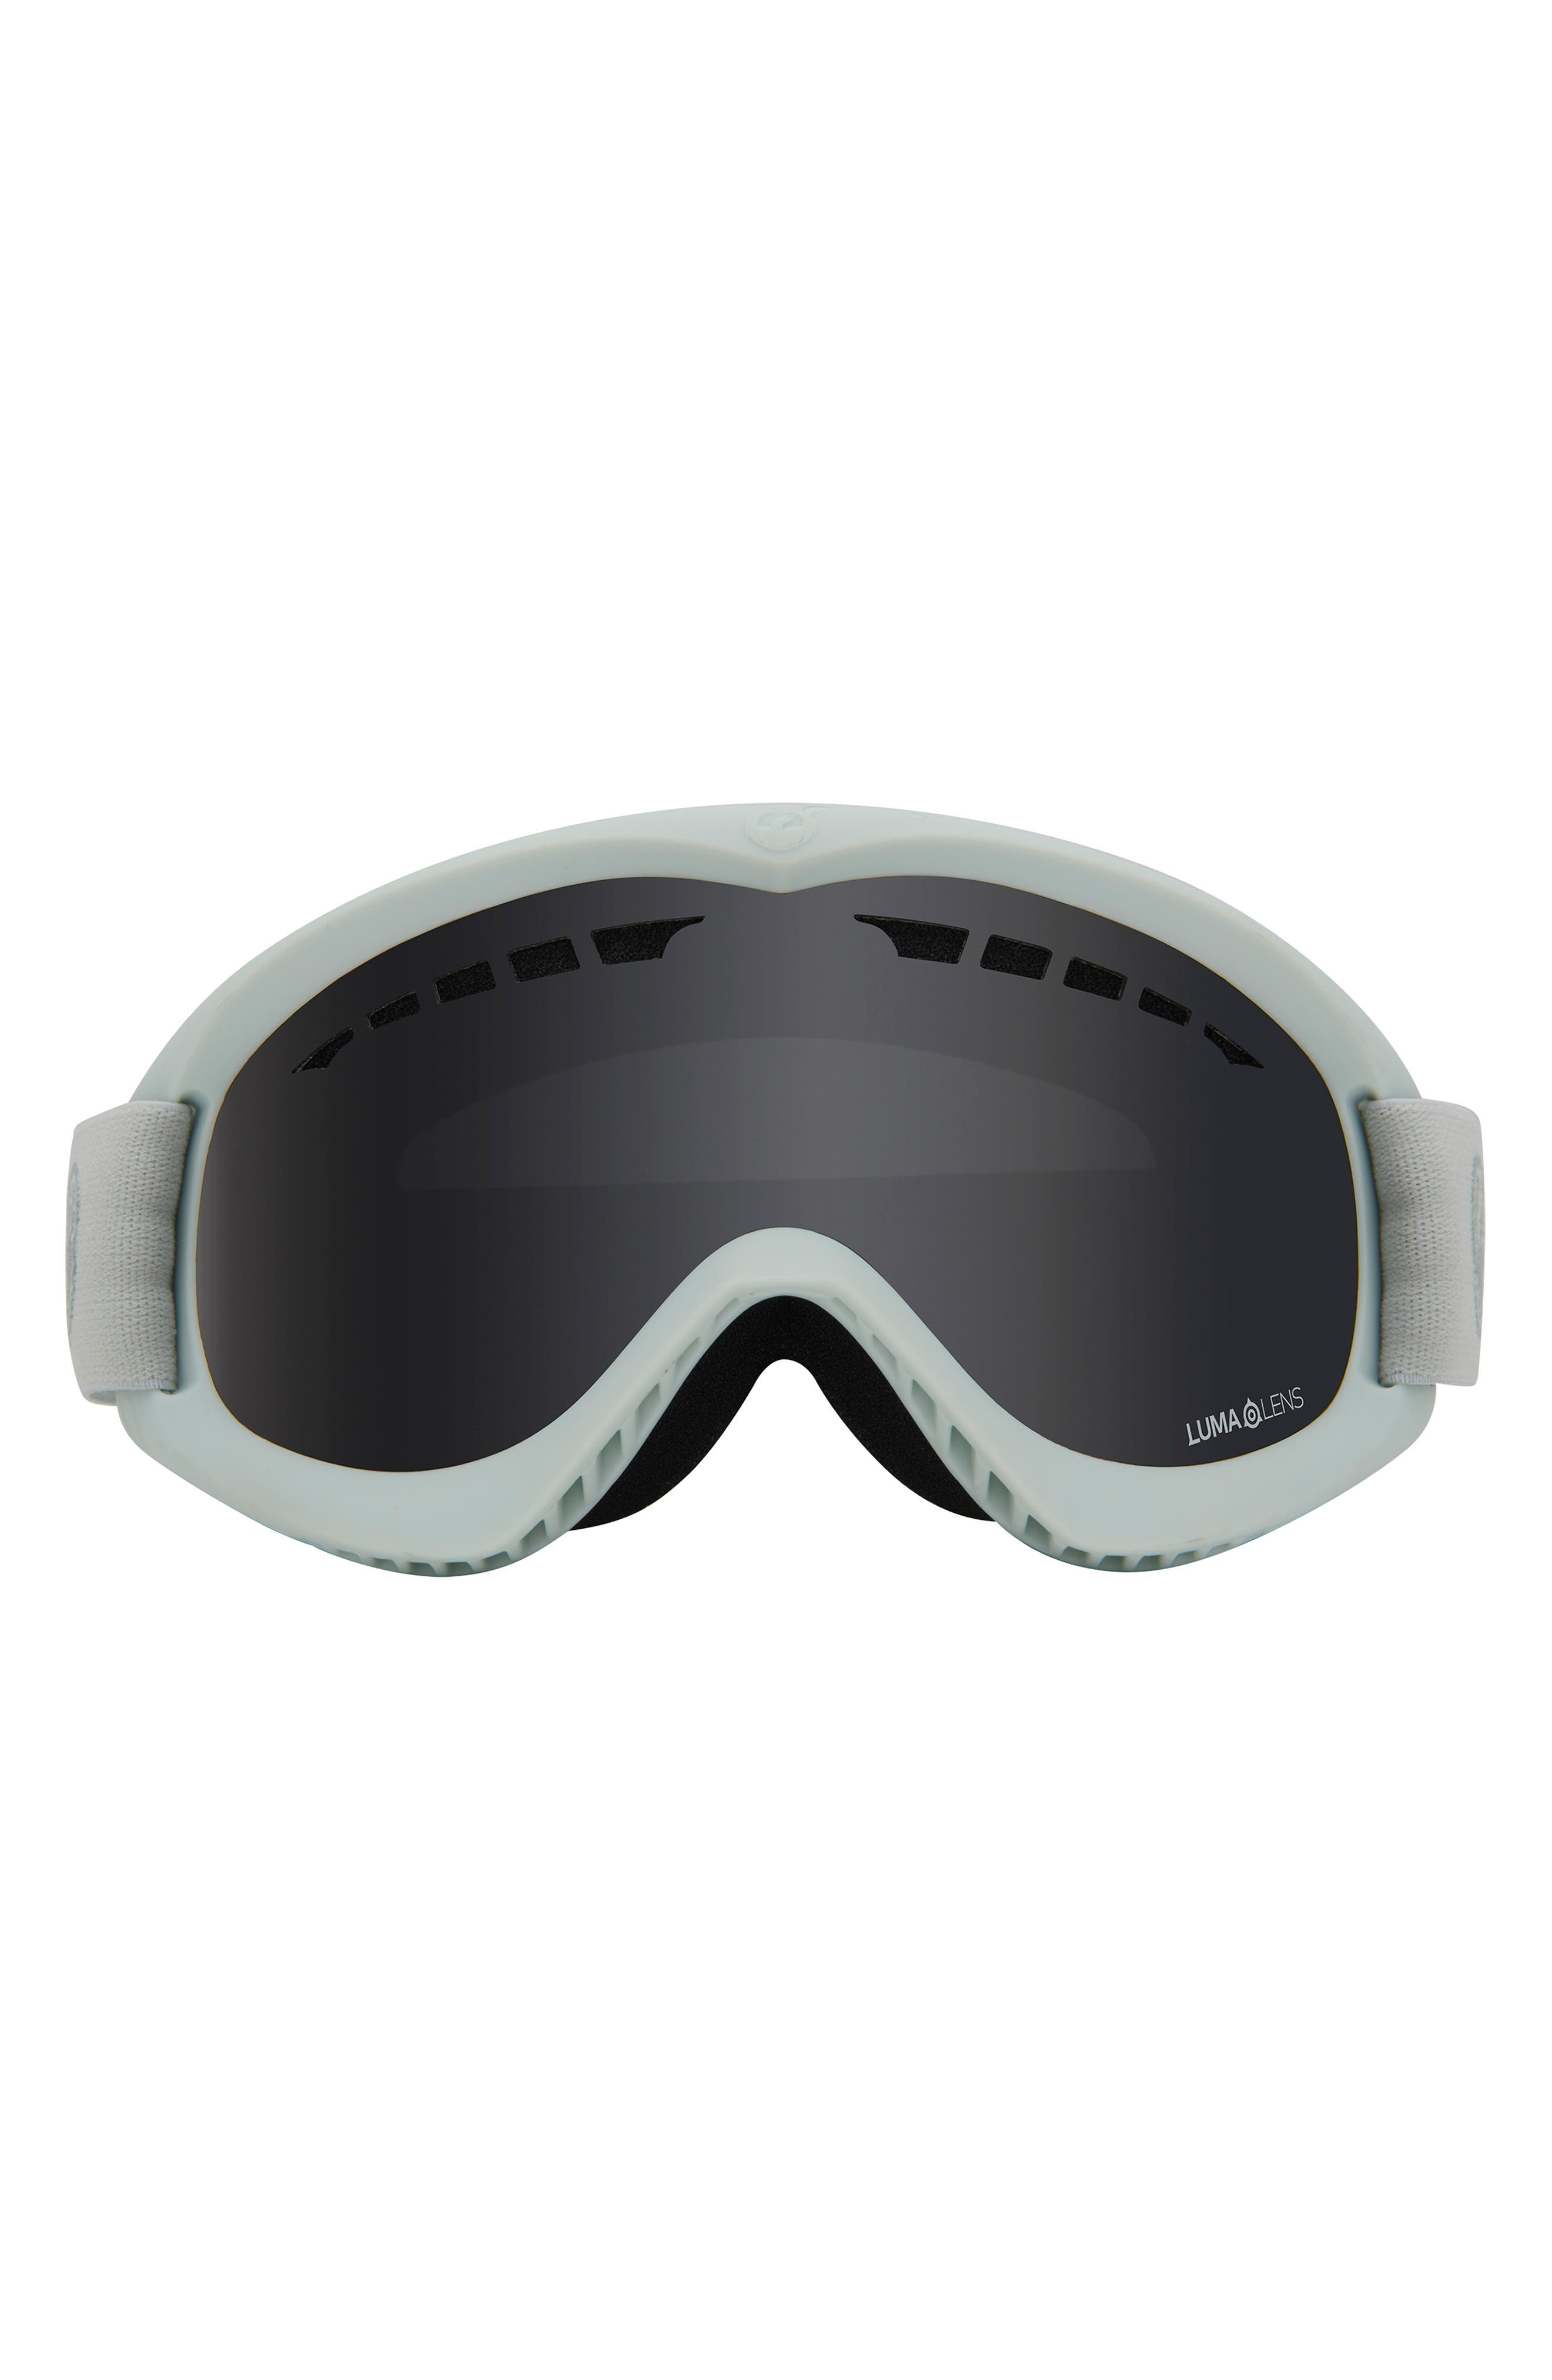 Dx Base 57mm Snow Goggles